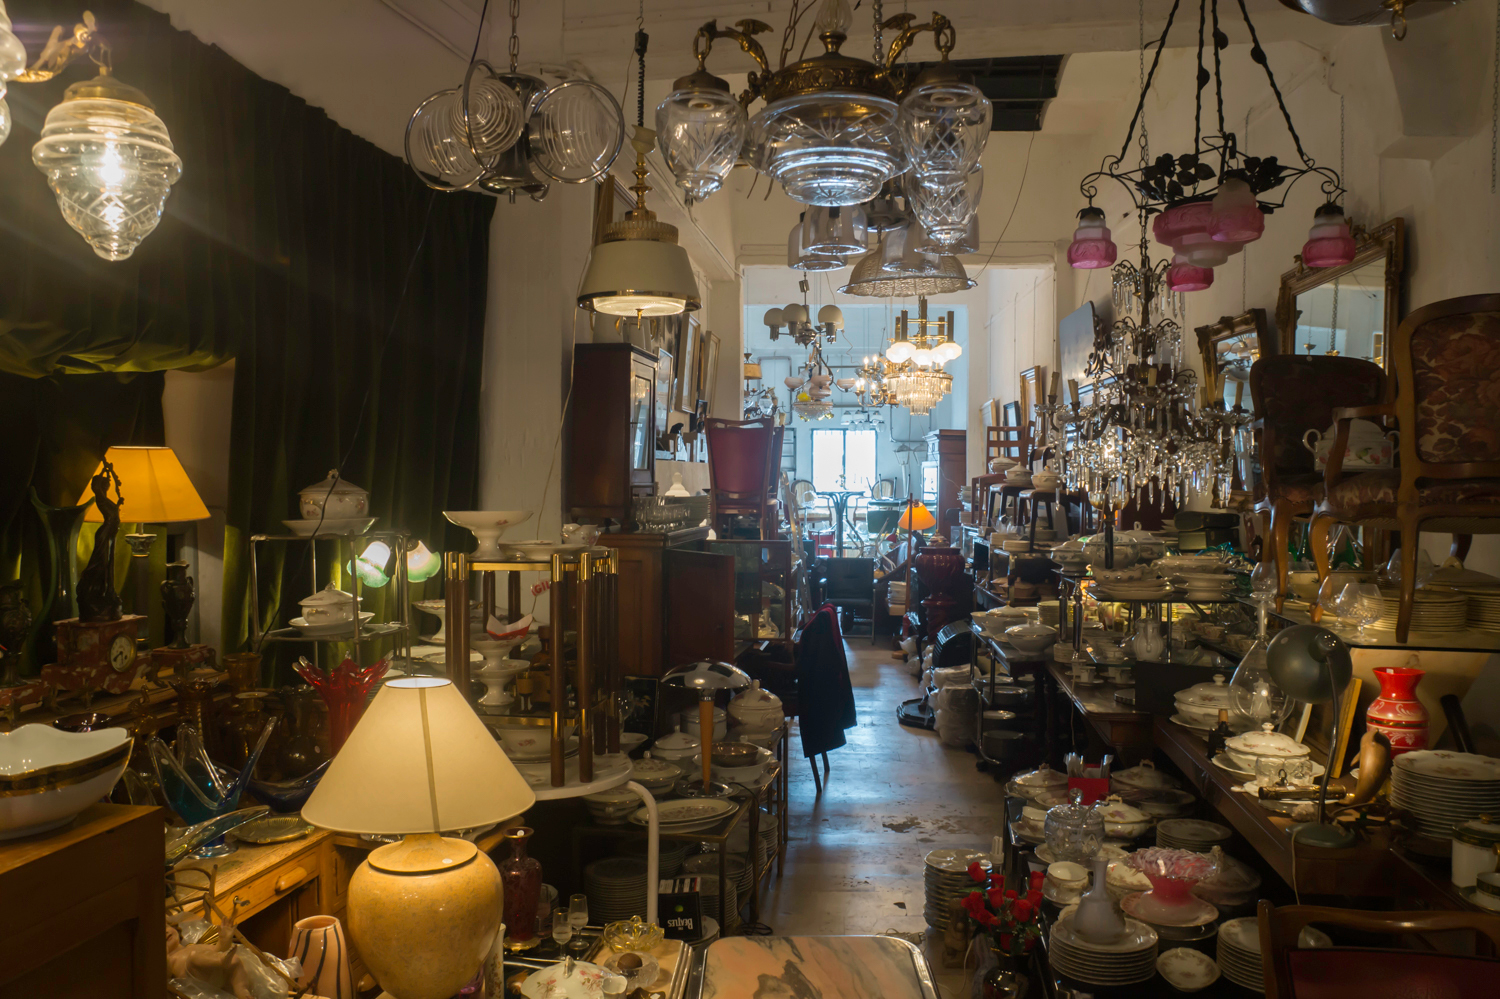 Antique dishware at Madrid Rastro